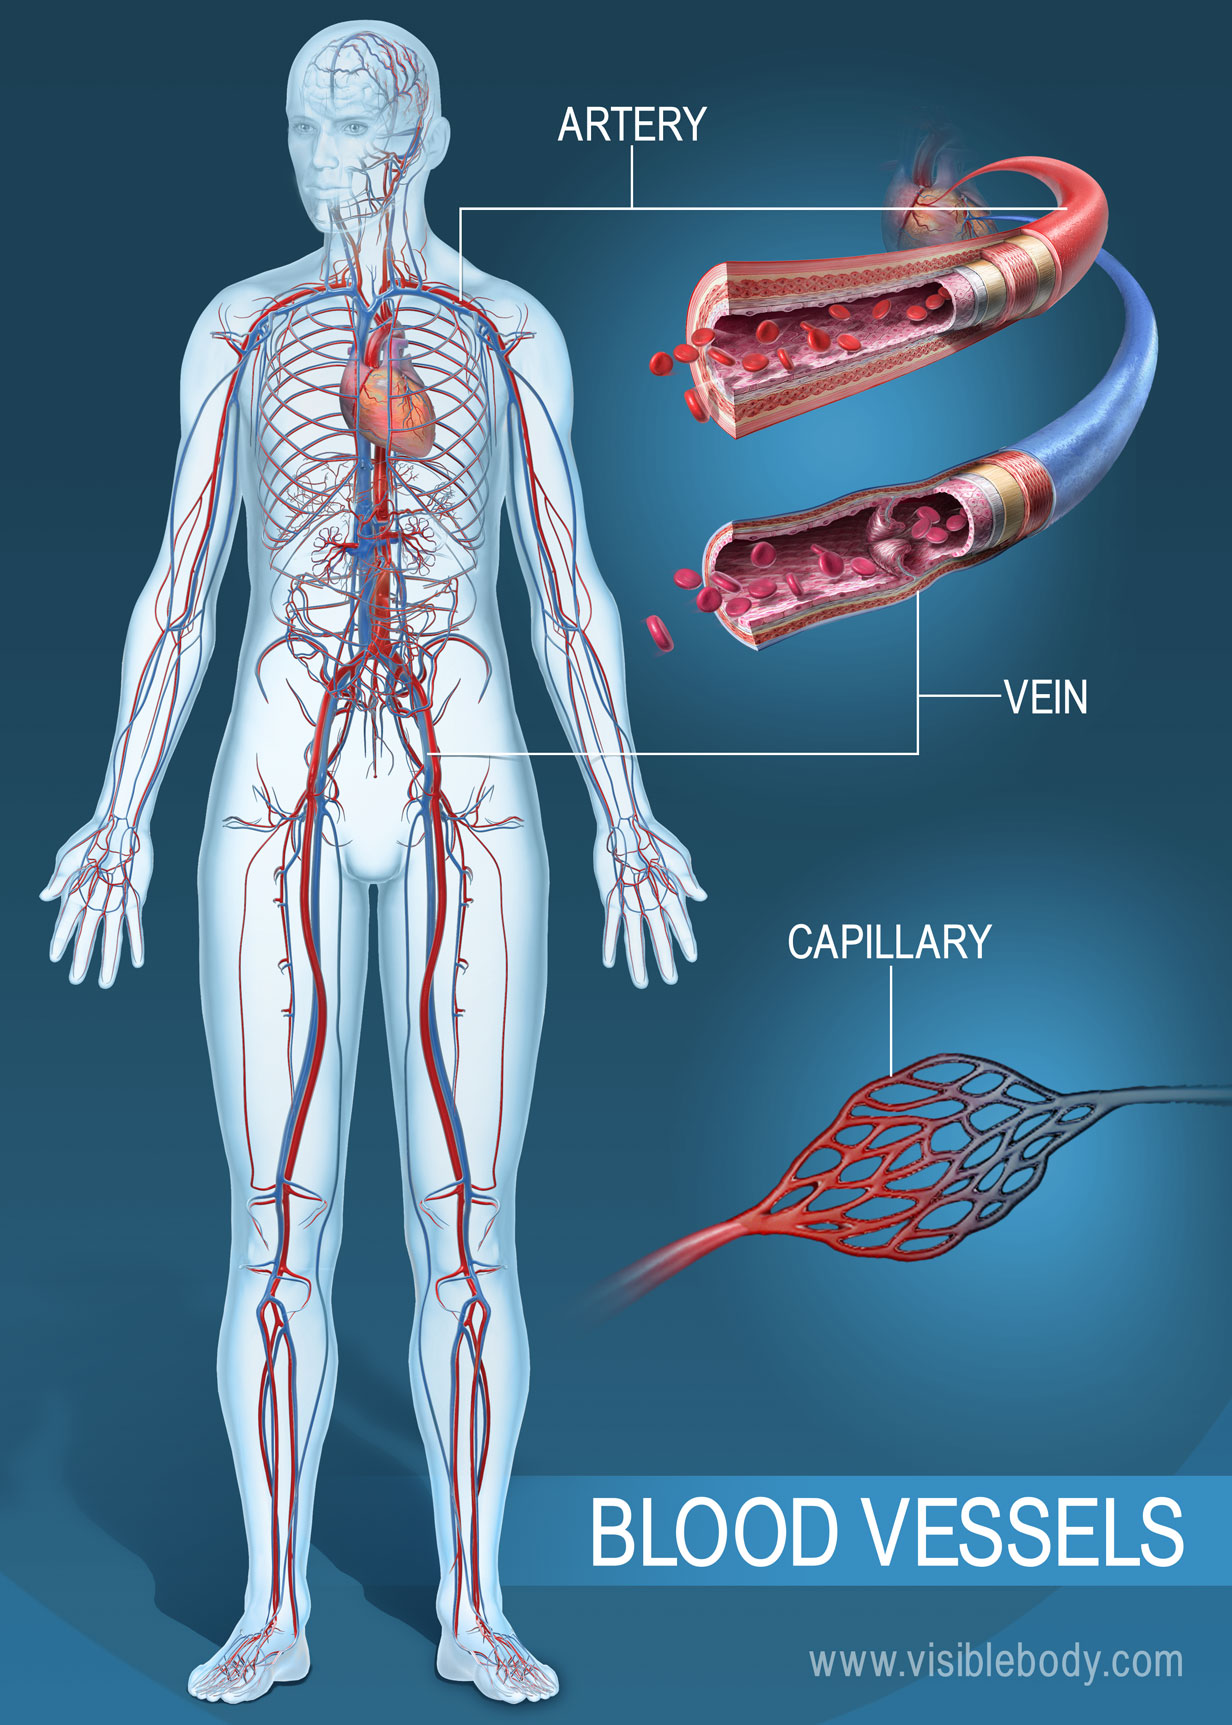 veins and arteries meet at the hanging